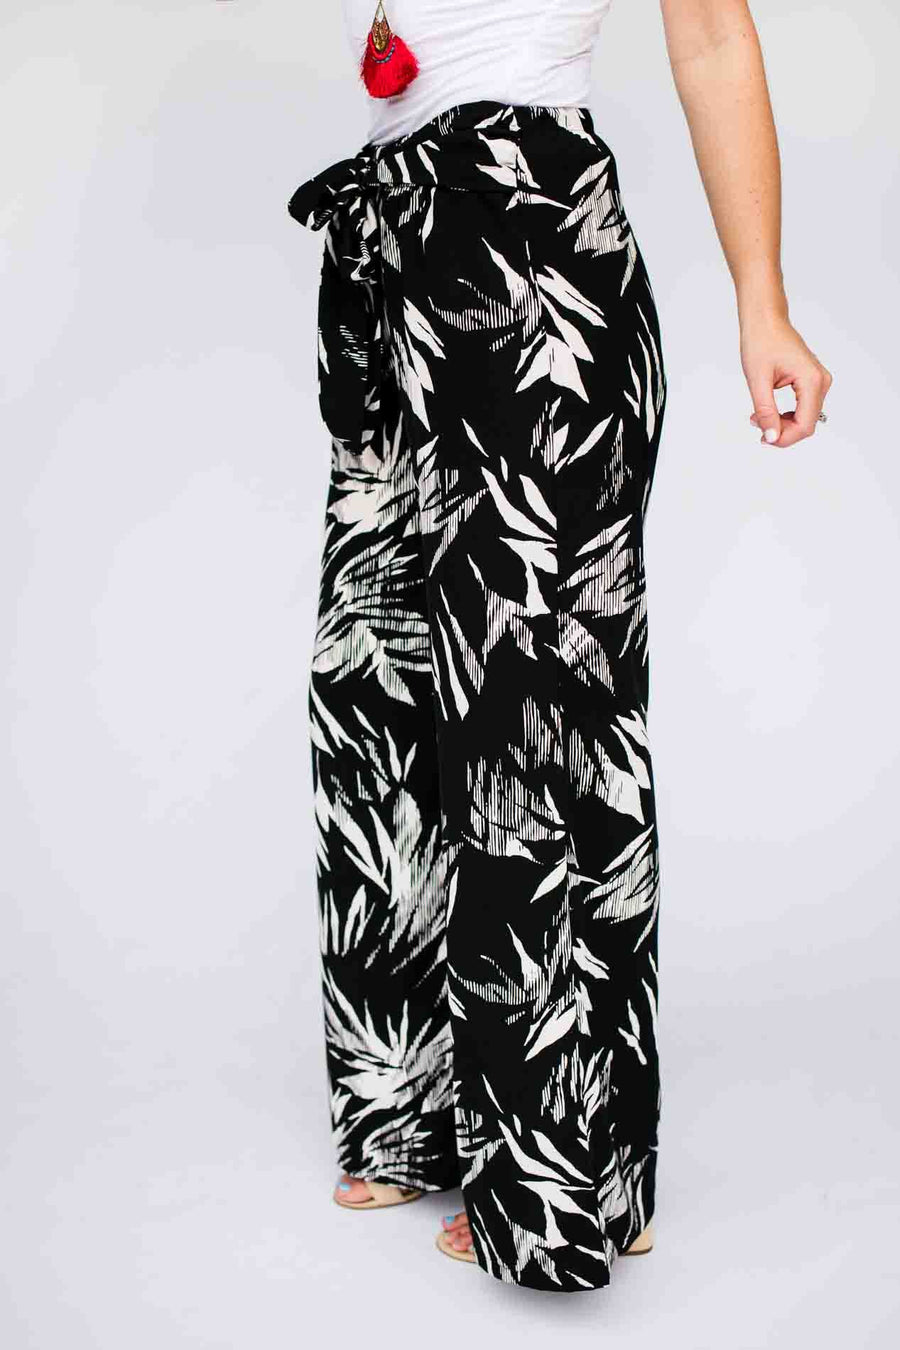 Bottoms Only the Best Benefits Print Pants in Black - Lotus Boutique